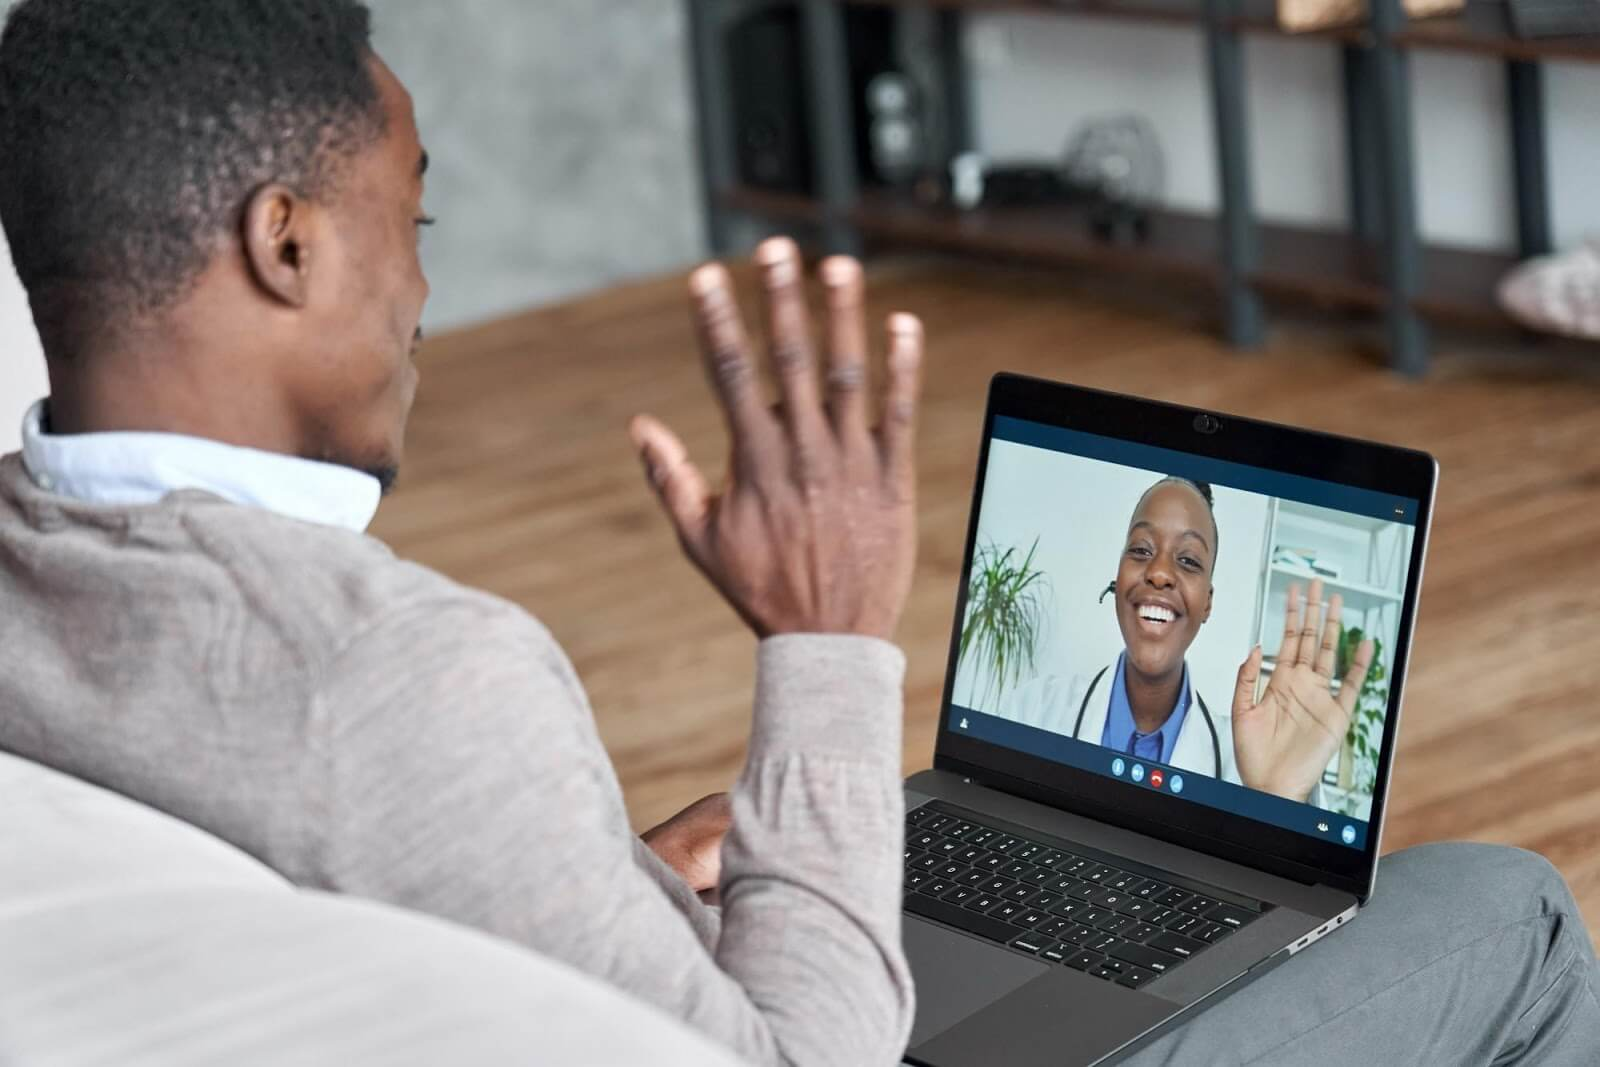 A young man using his laptop to video chat with his doctor through telehealth